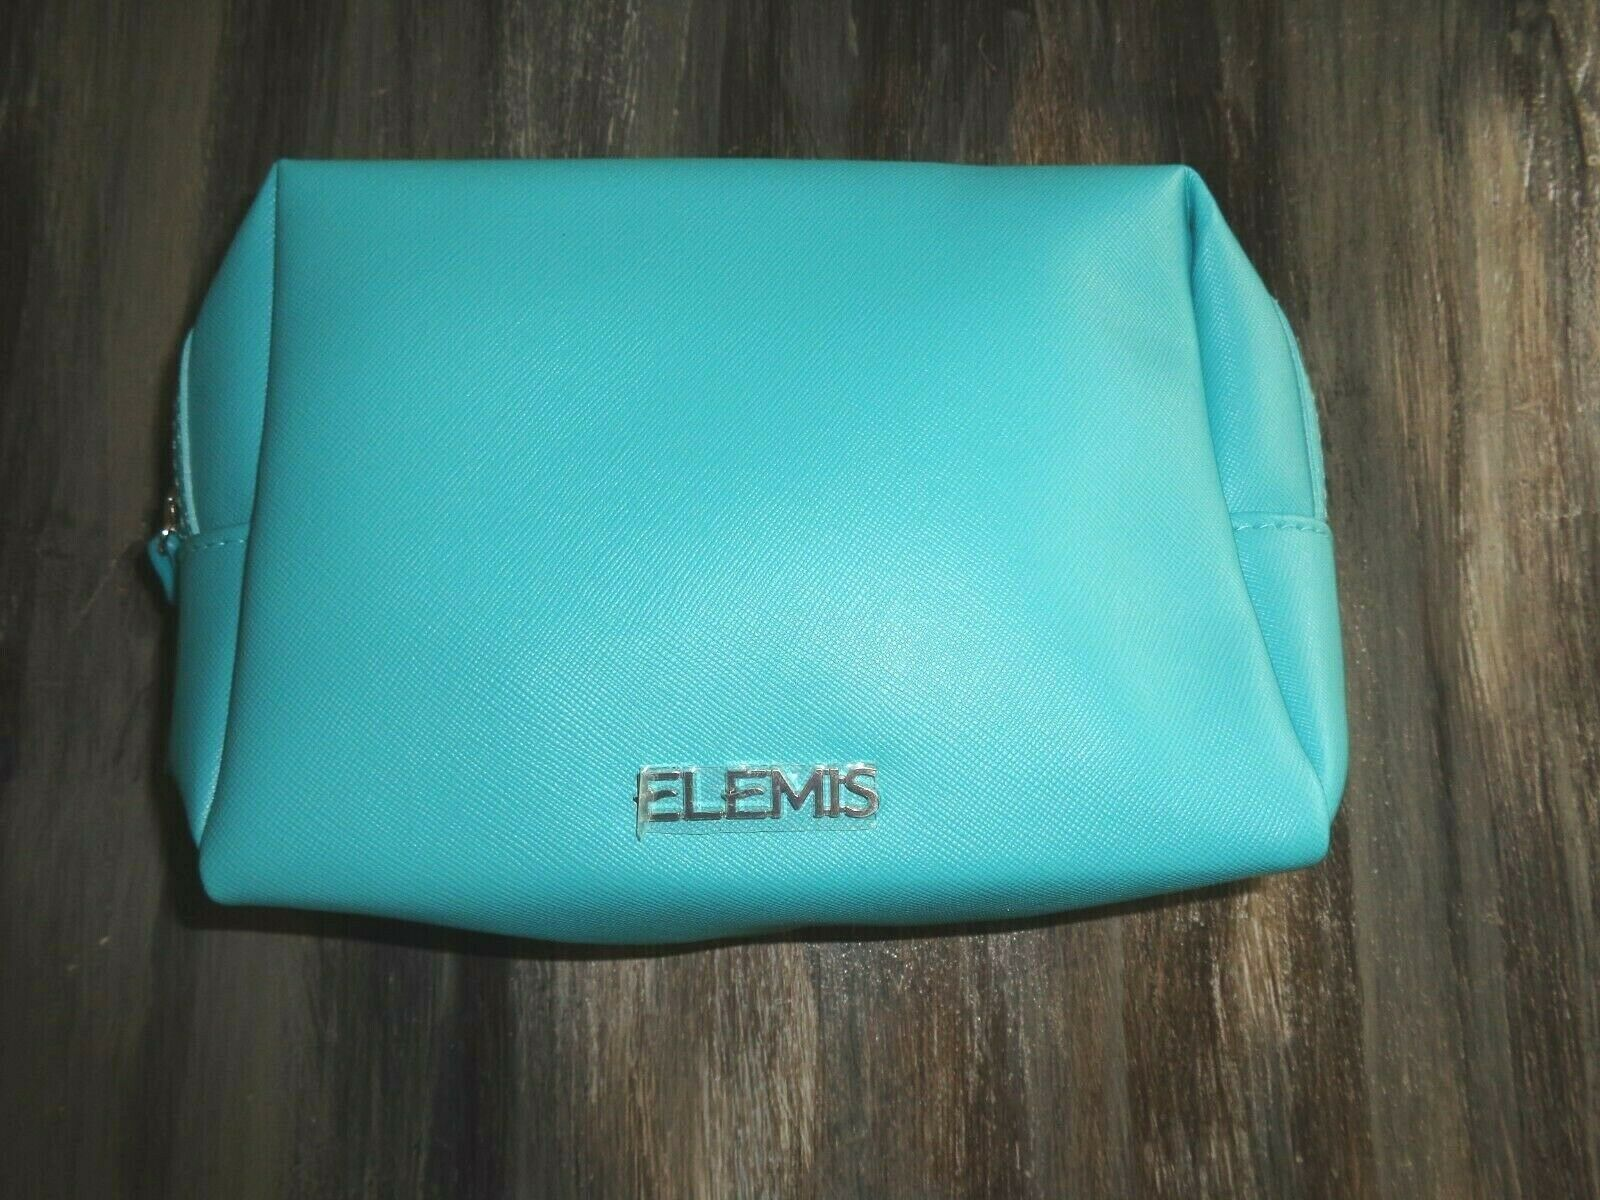 Primary image for ELEMIS MAKEUP BAG BRAND NEW